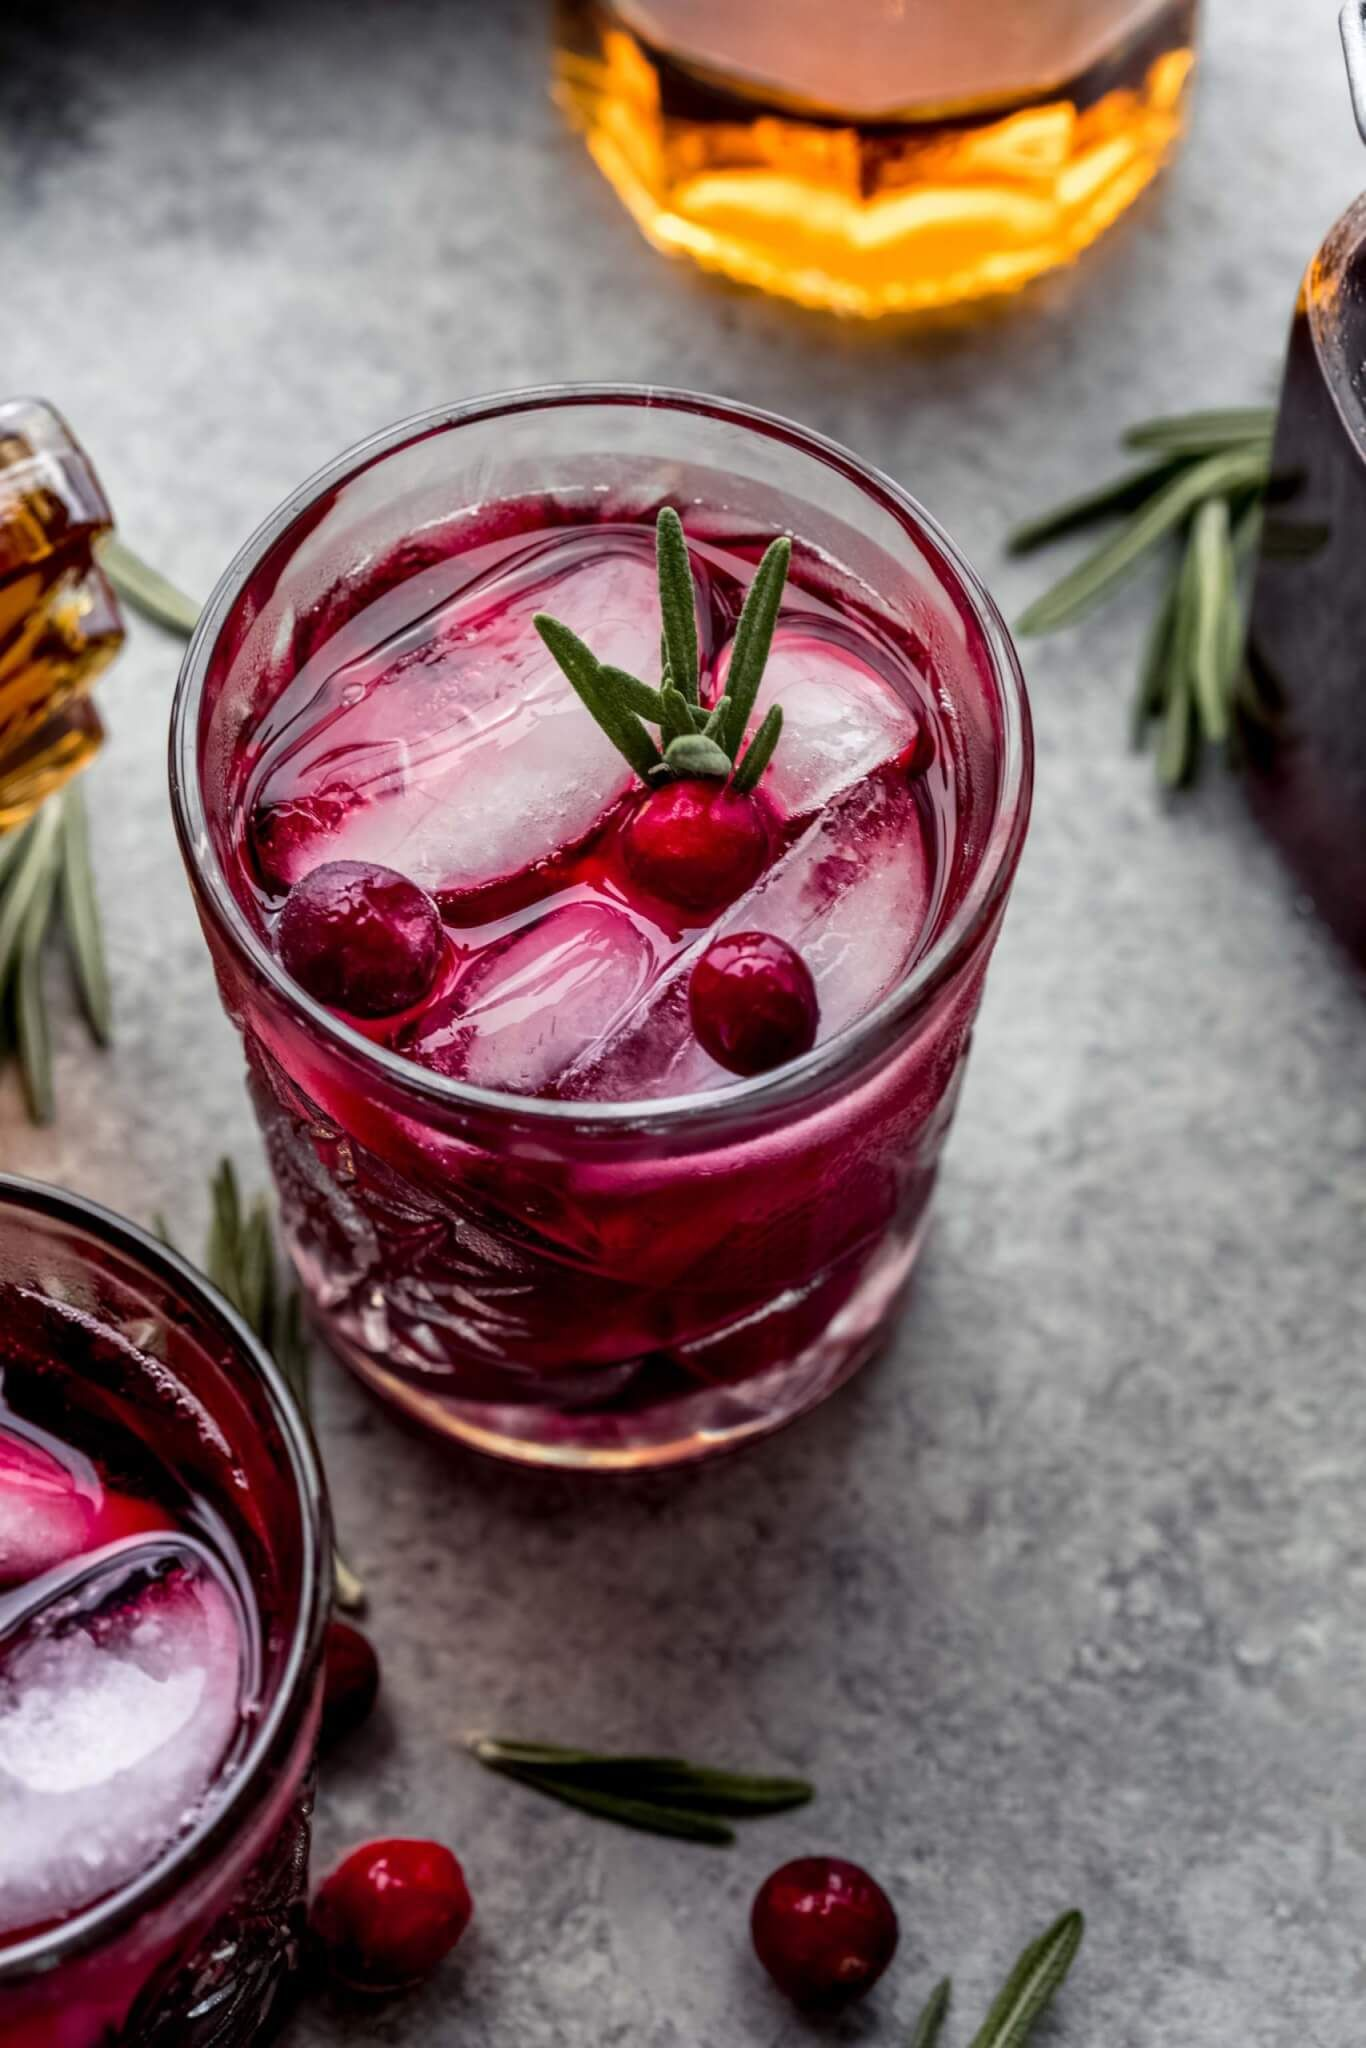 Cranberry Maple Bourbon Smash Cocktail In 2020 Fall Cocktails Recipes Cranberry Cocktail Cranberry Simple Syrup